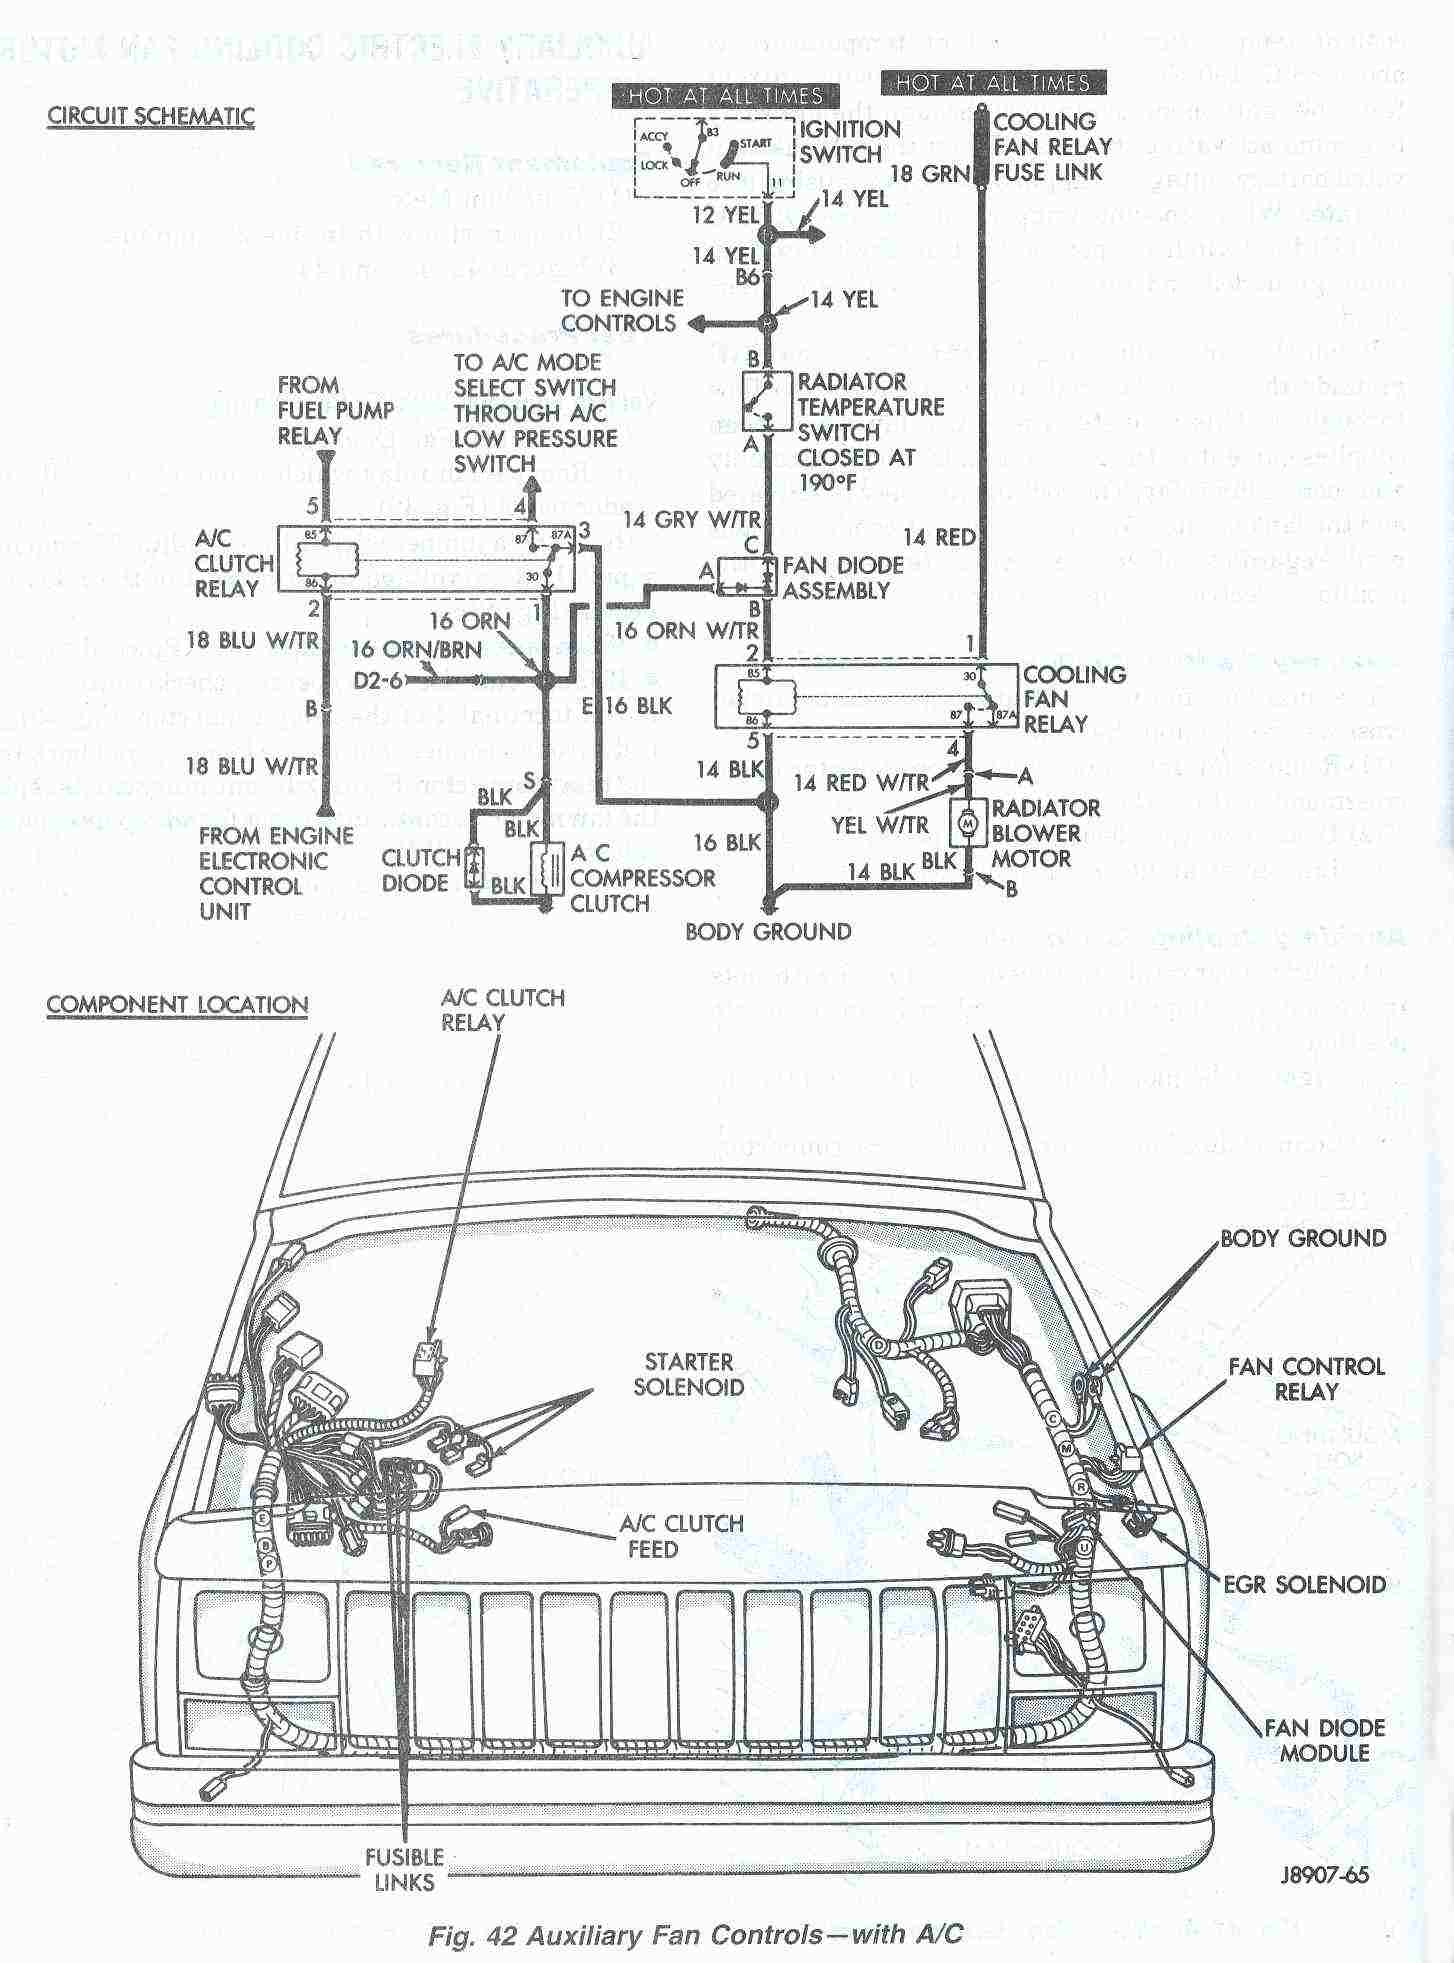 jeep cherokee cooling fan relay wiring diagram 9 uio capecoraljeep cherokee cooling system electric cooling fan troubleshooting rh lunghd com 2004 jeep grand cherokee parts